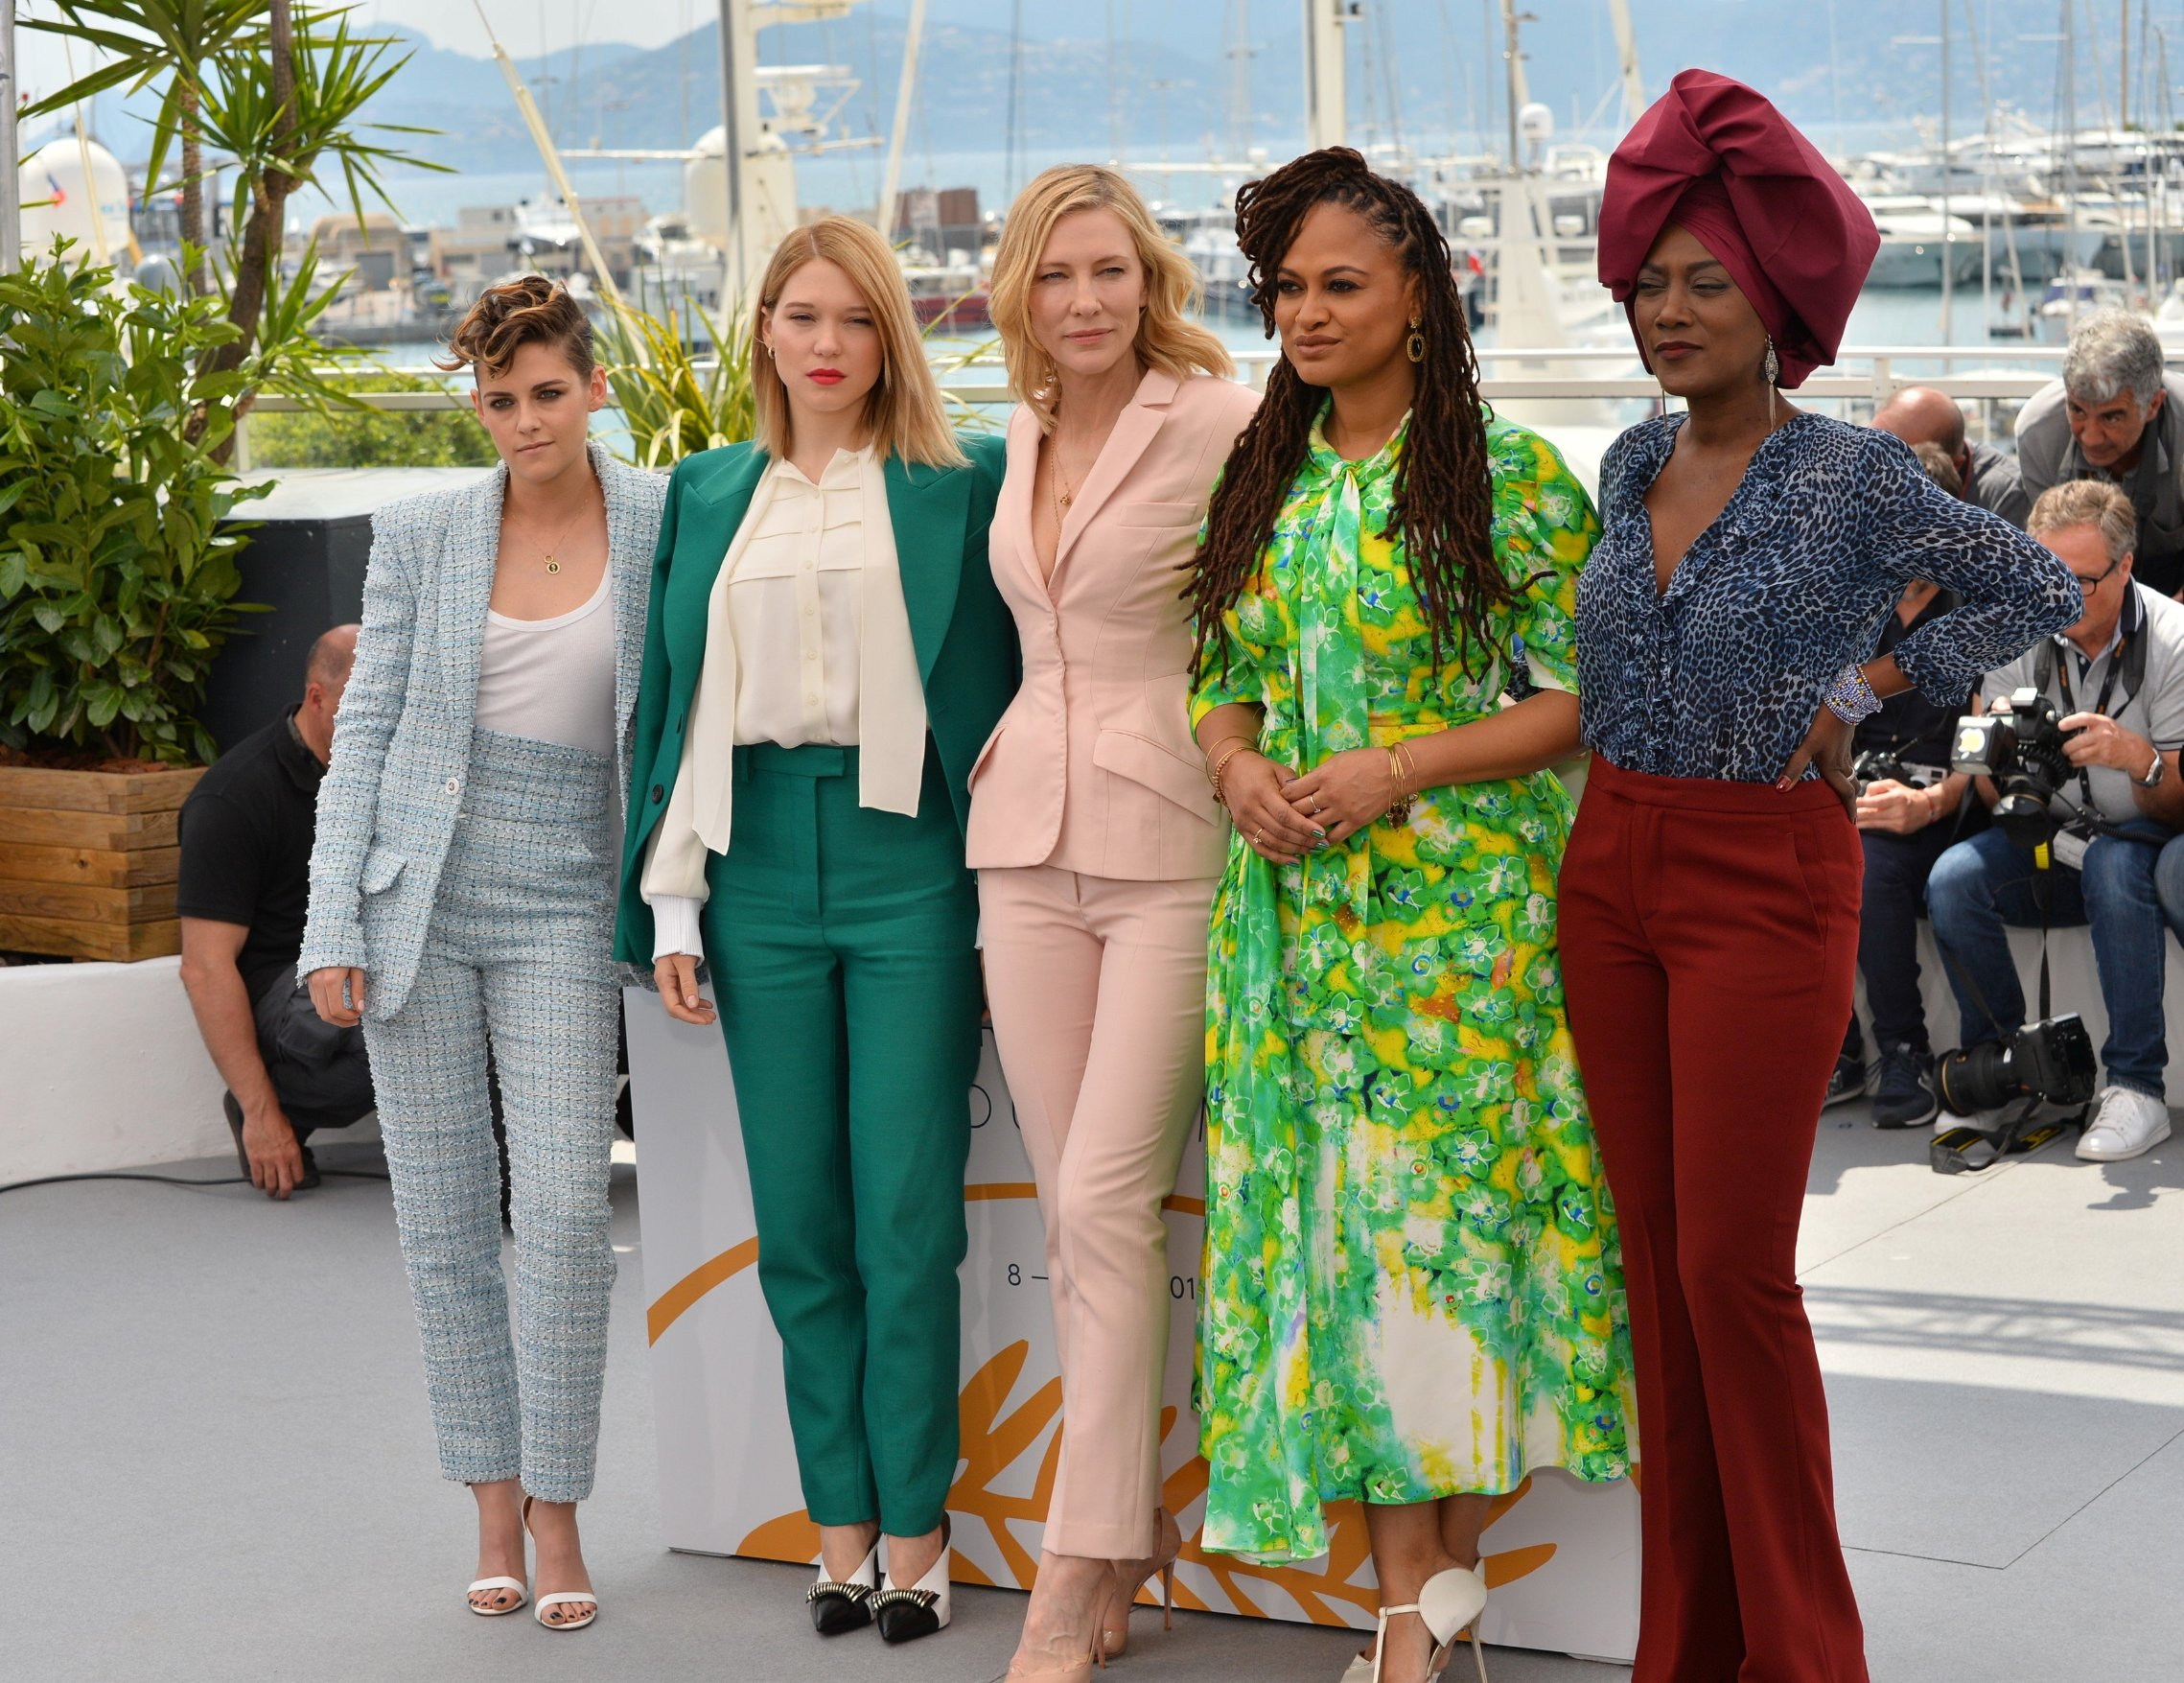 Kristen Stewart, Lea Seydoux, Cate Blanchett, Ava Duvernay & Khadja Nin Cannes Jury Photocall, Cannes Film Festival, France 8 May 2018, Image: 370927947, License: Rights-managed, Restrictions: , Model Release: no, Credit line: Profimedia, TEMP Rex Features